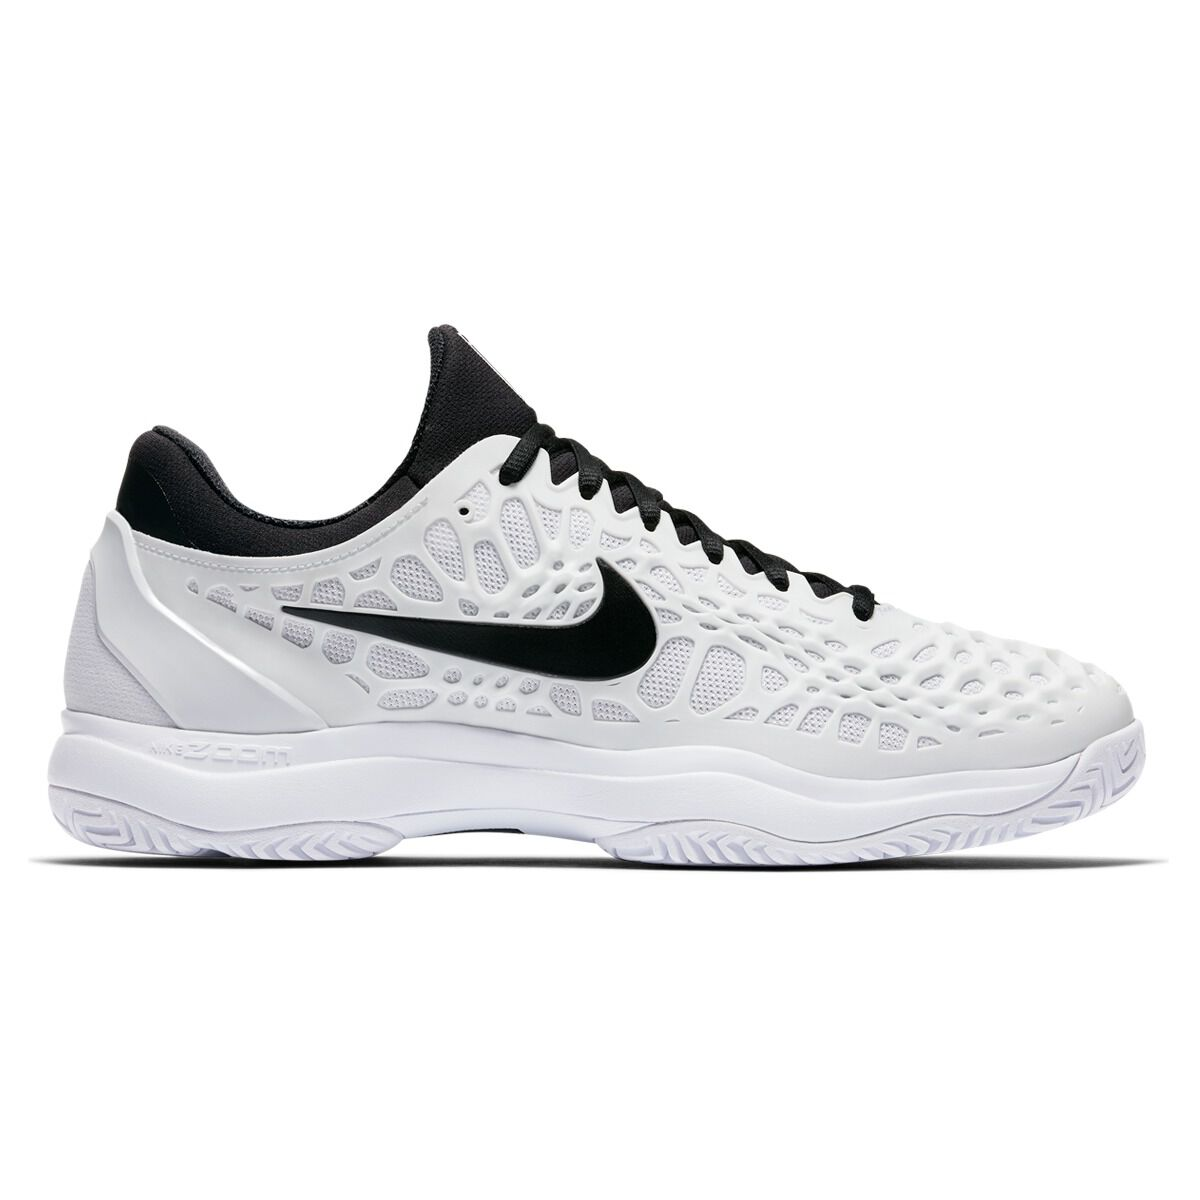 Nike Air Zoom Cage 3 Mens Tennis Shoes